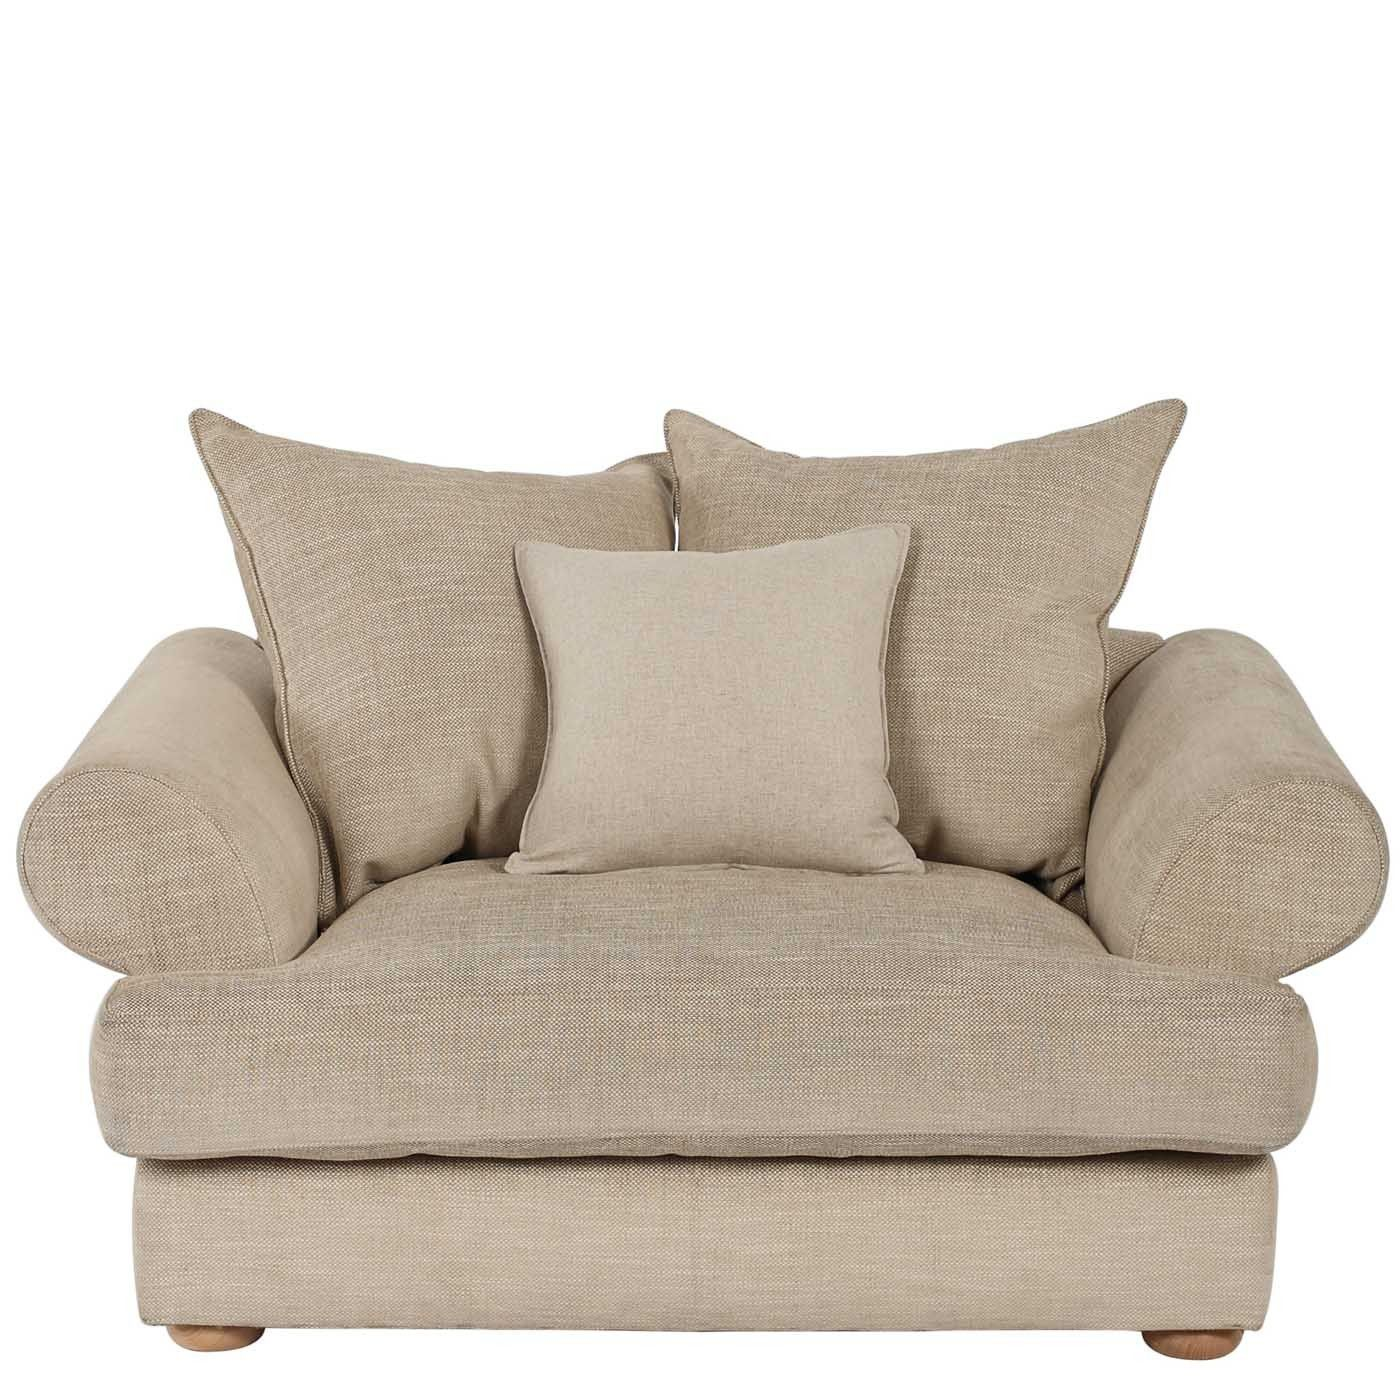 Overstuffed Living Room Chairs: Lincoln Chair And A Half